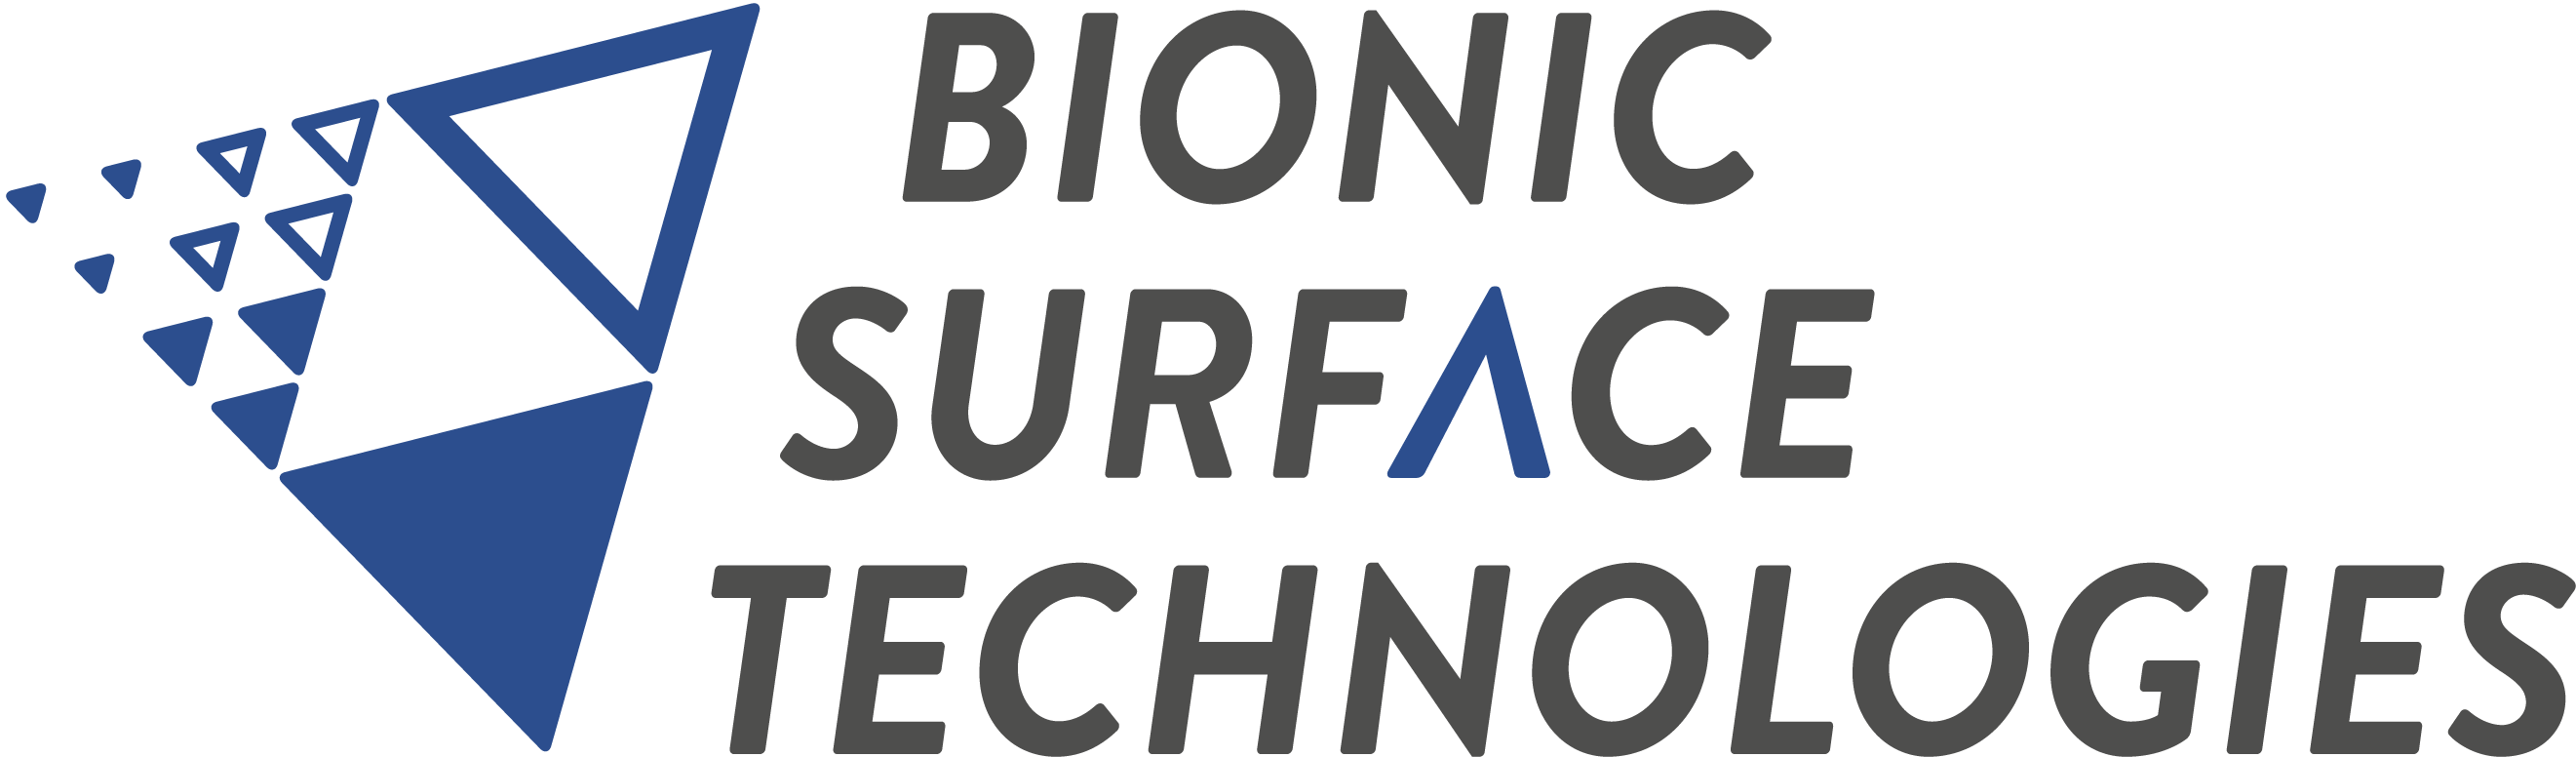 Bionic Surface Technologies